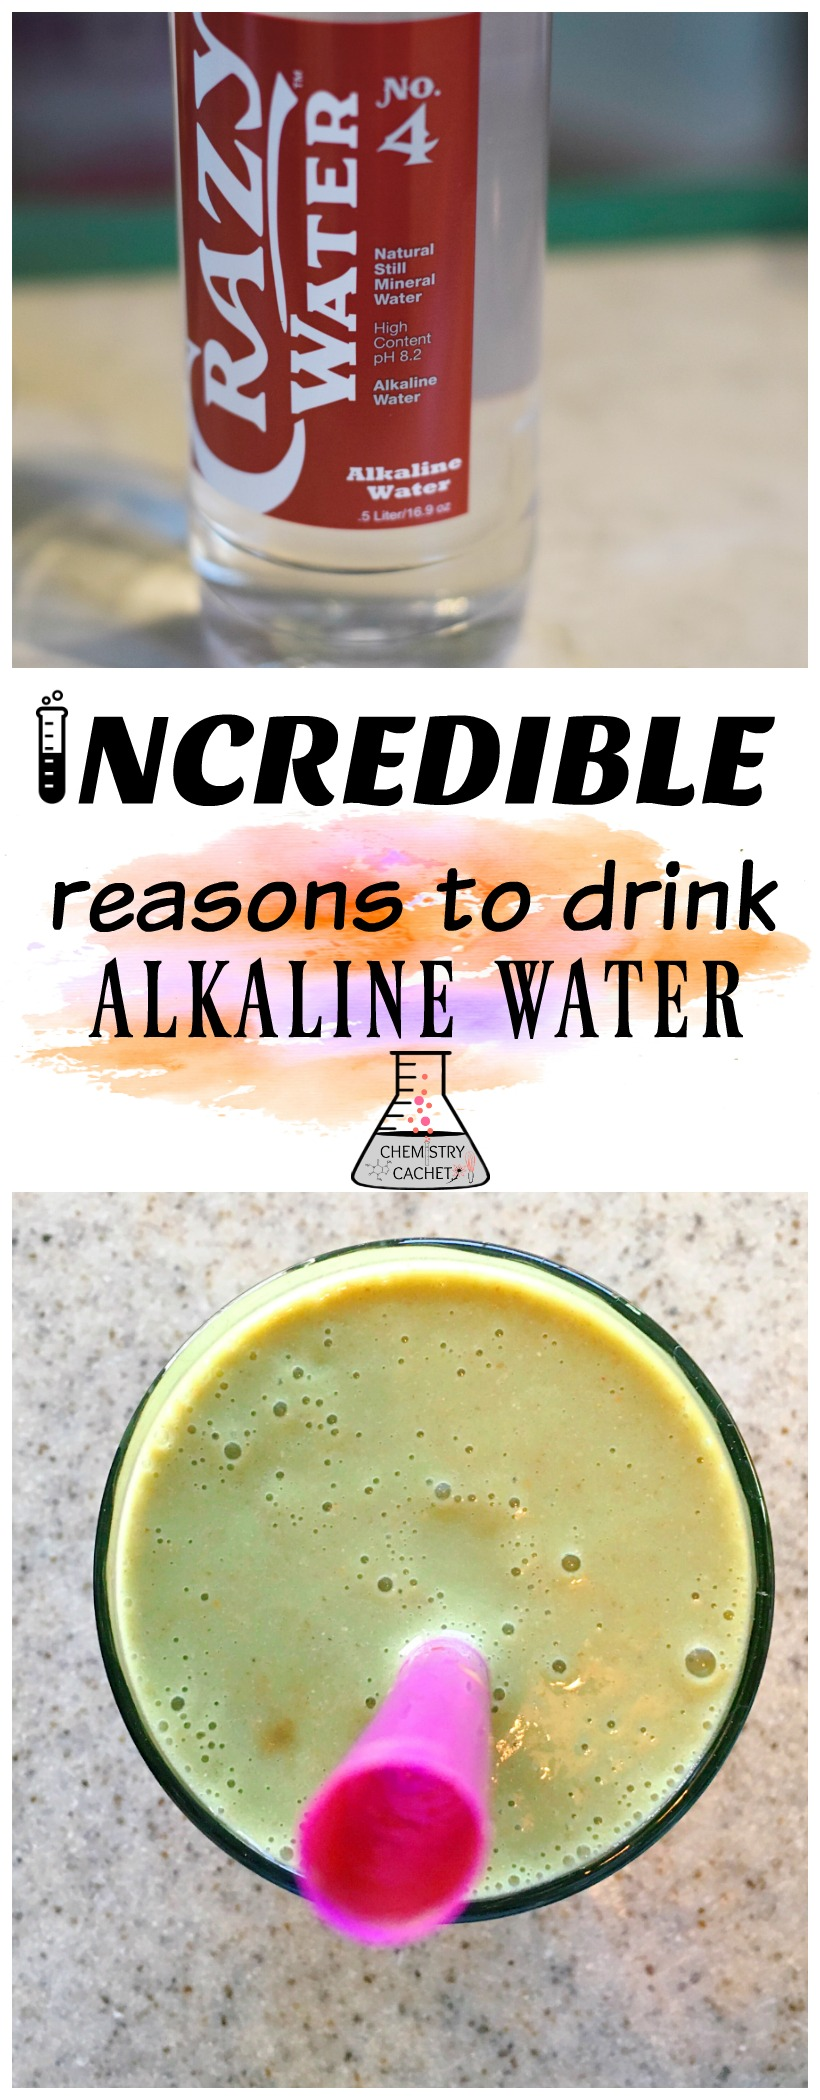 Incredibly awesome reasons to drink alkaline water. Alkaline water is so good for your health, like the CRAZY water. More on chemistrycachet.com